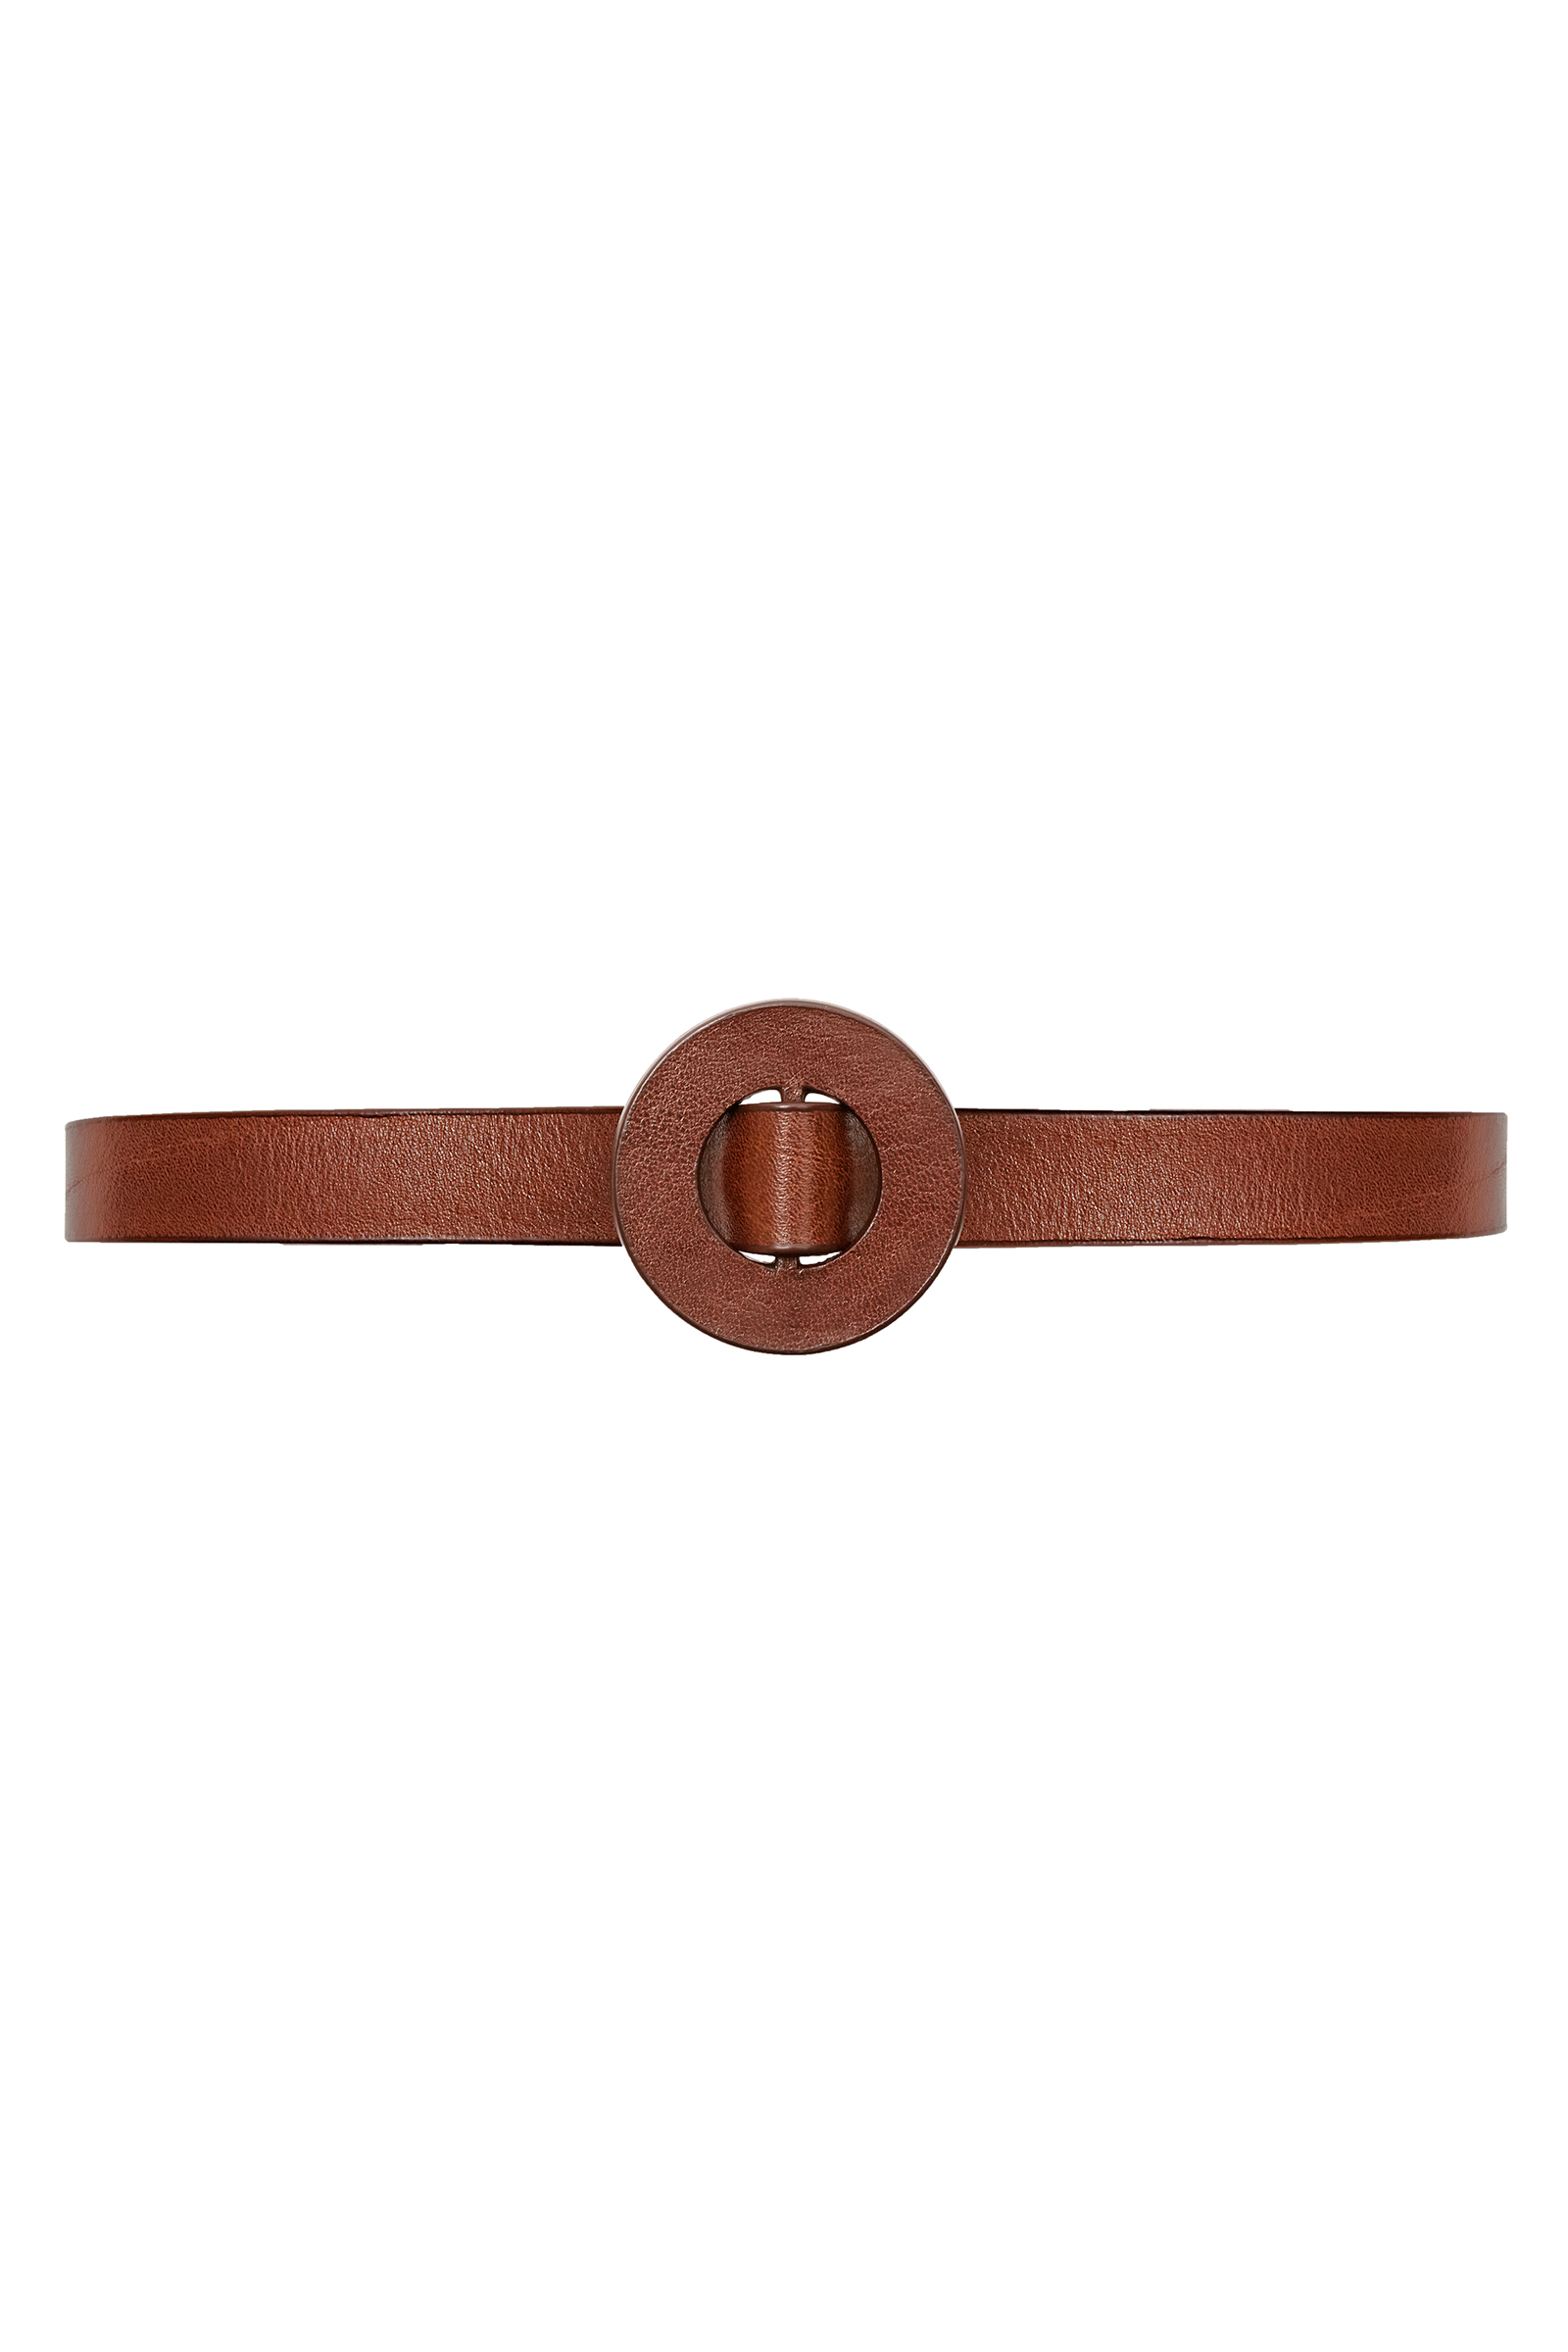 Aro, slim belt in maroon leather - Cortana Moda